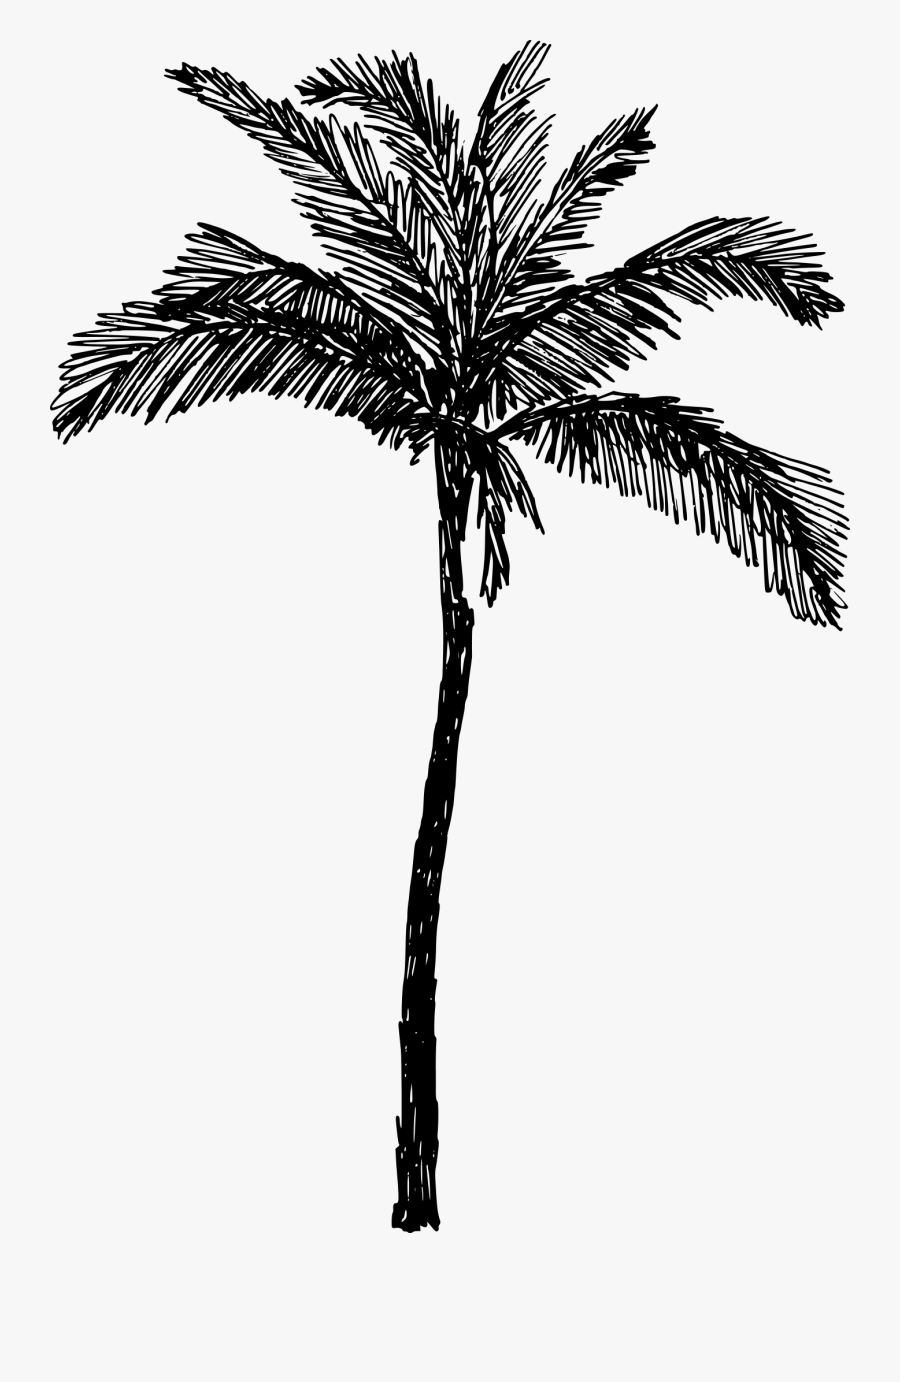 Palm-tree - Palm Tree Drawing Png, Transparent Clipart